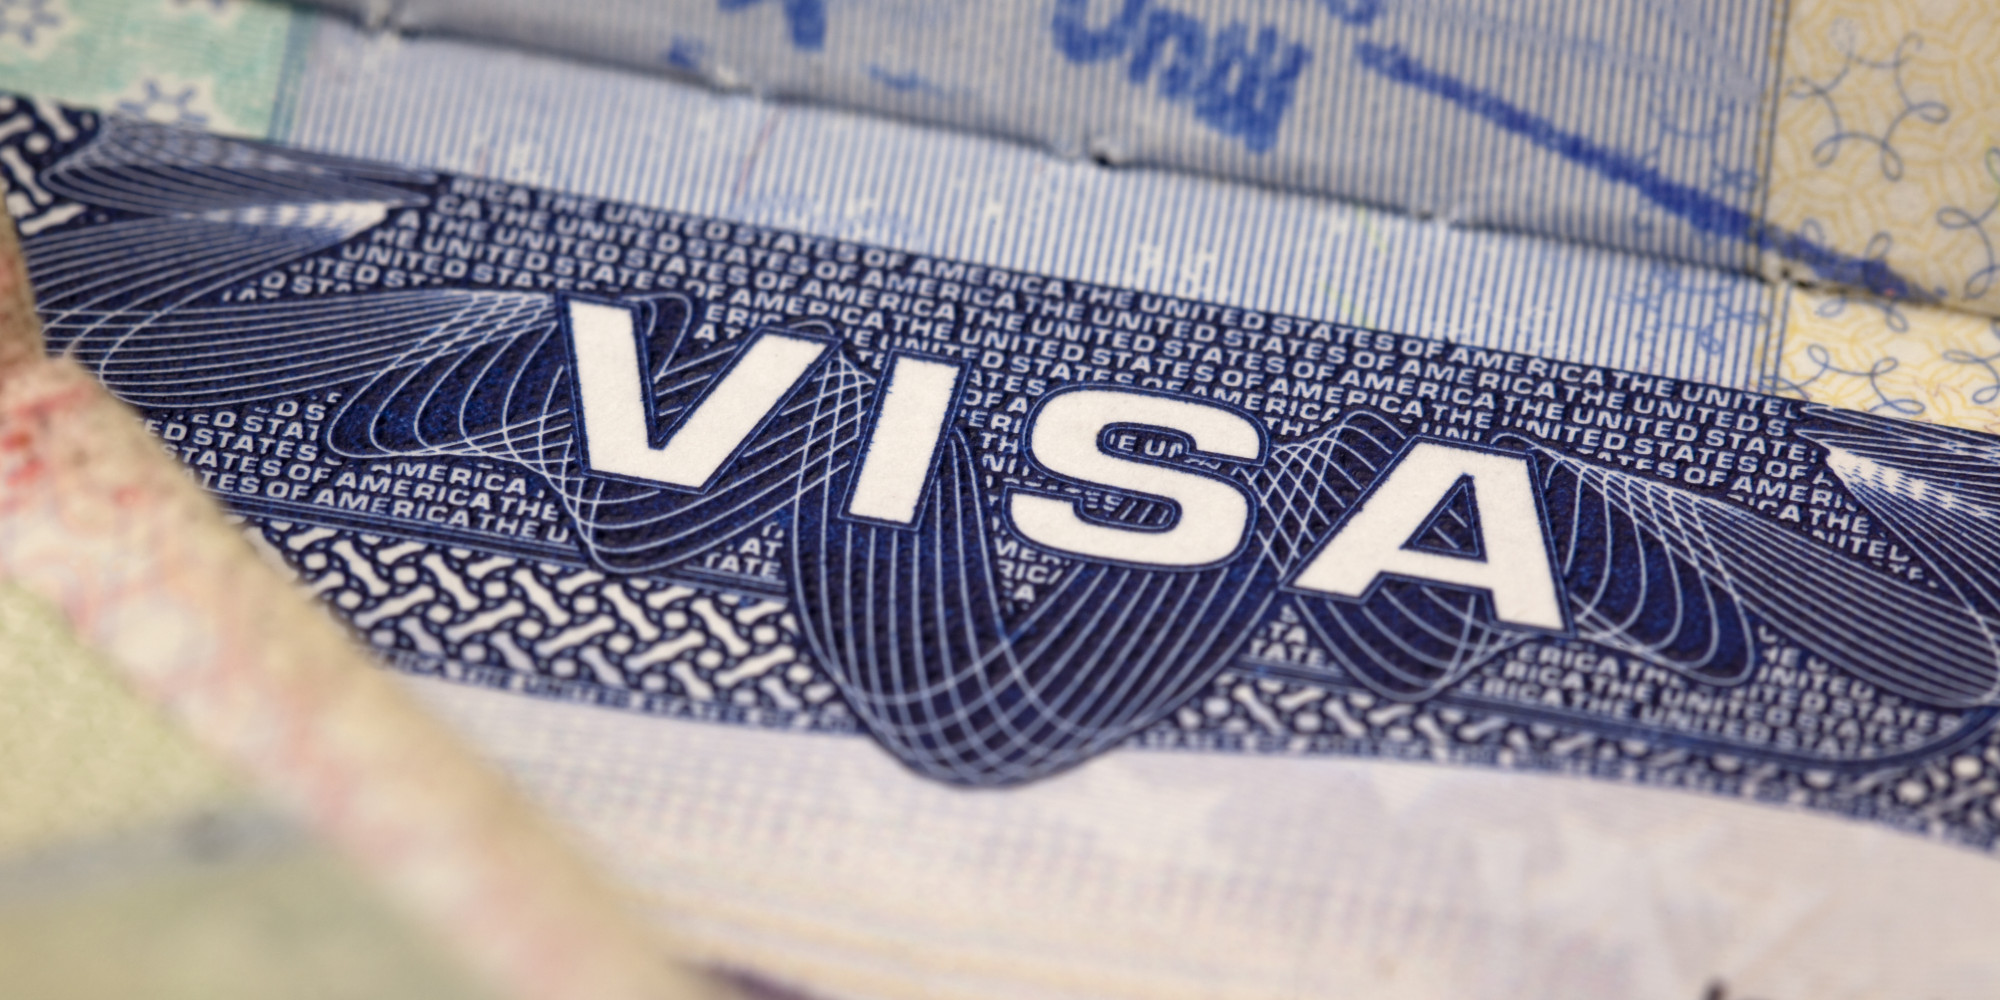 Some U.S. Visas Are Now Easier To Get: What This Means For The Future Of Immigration